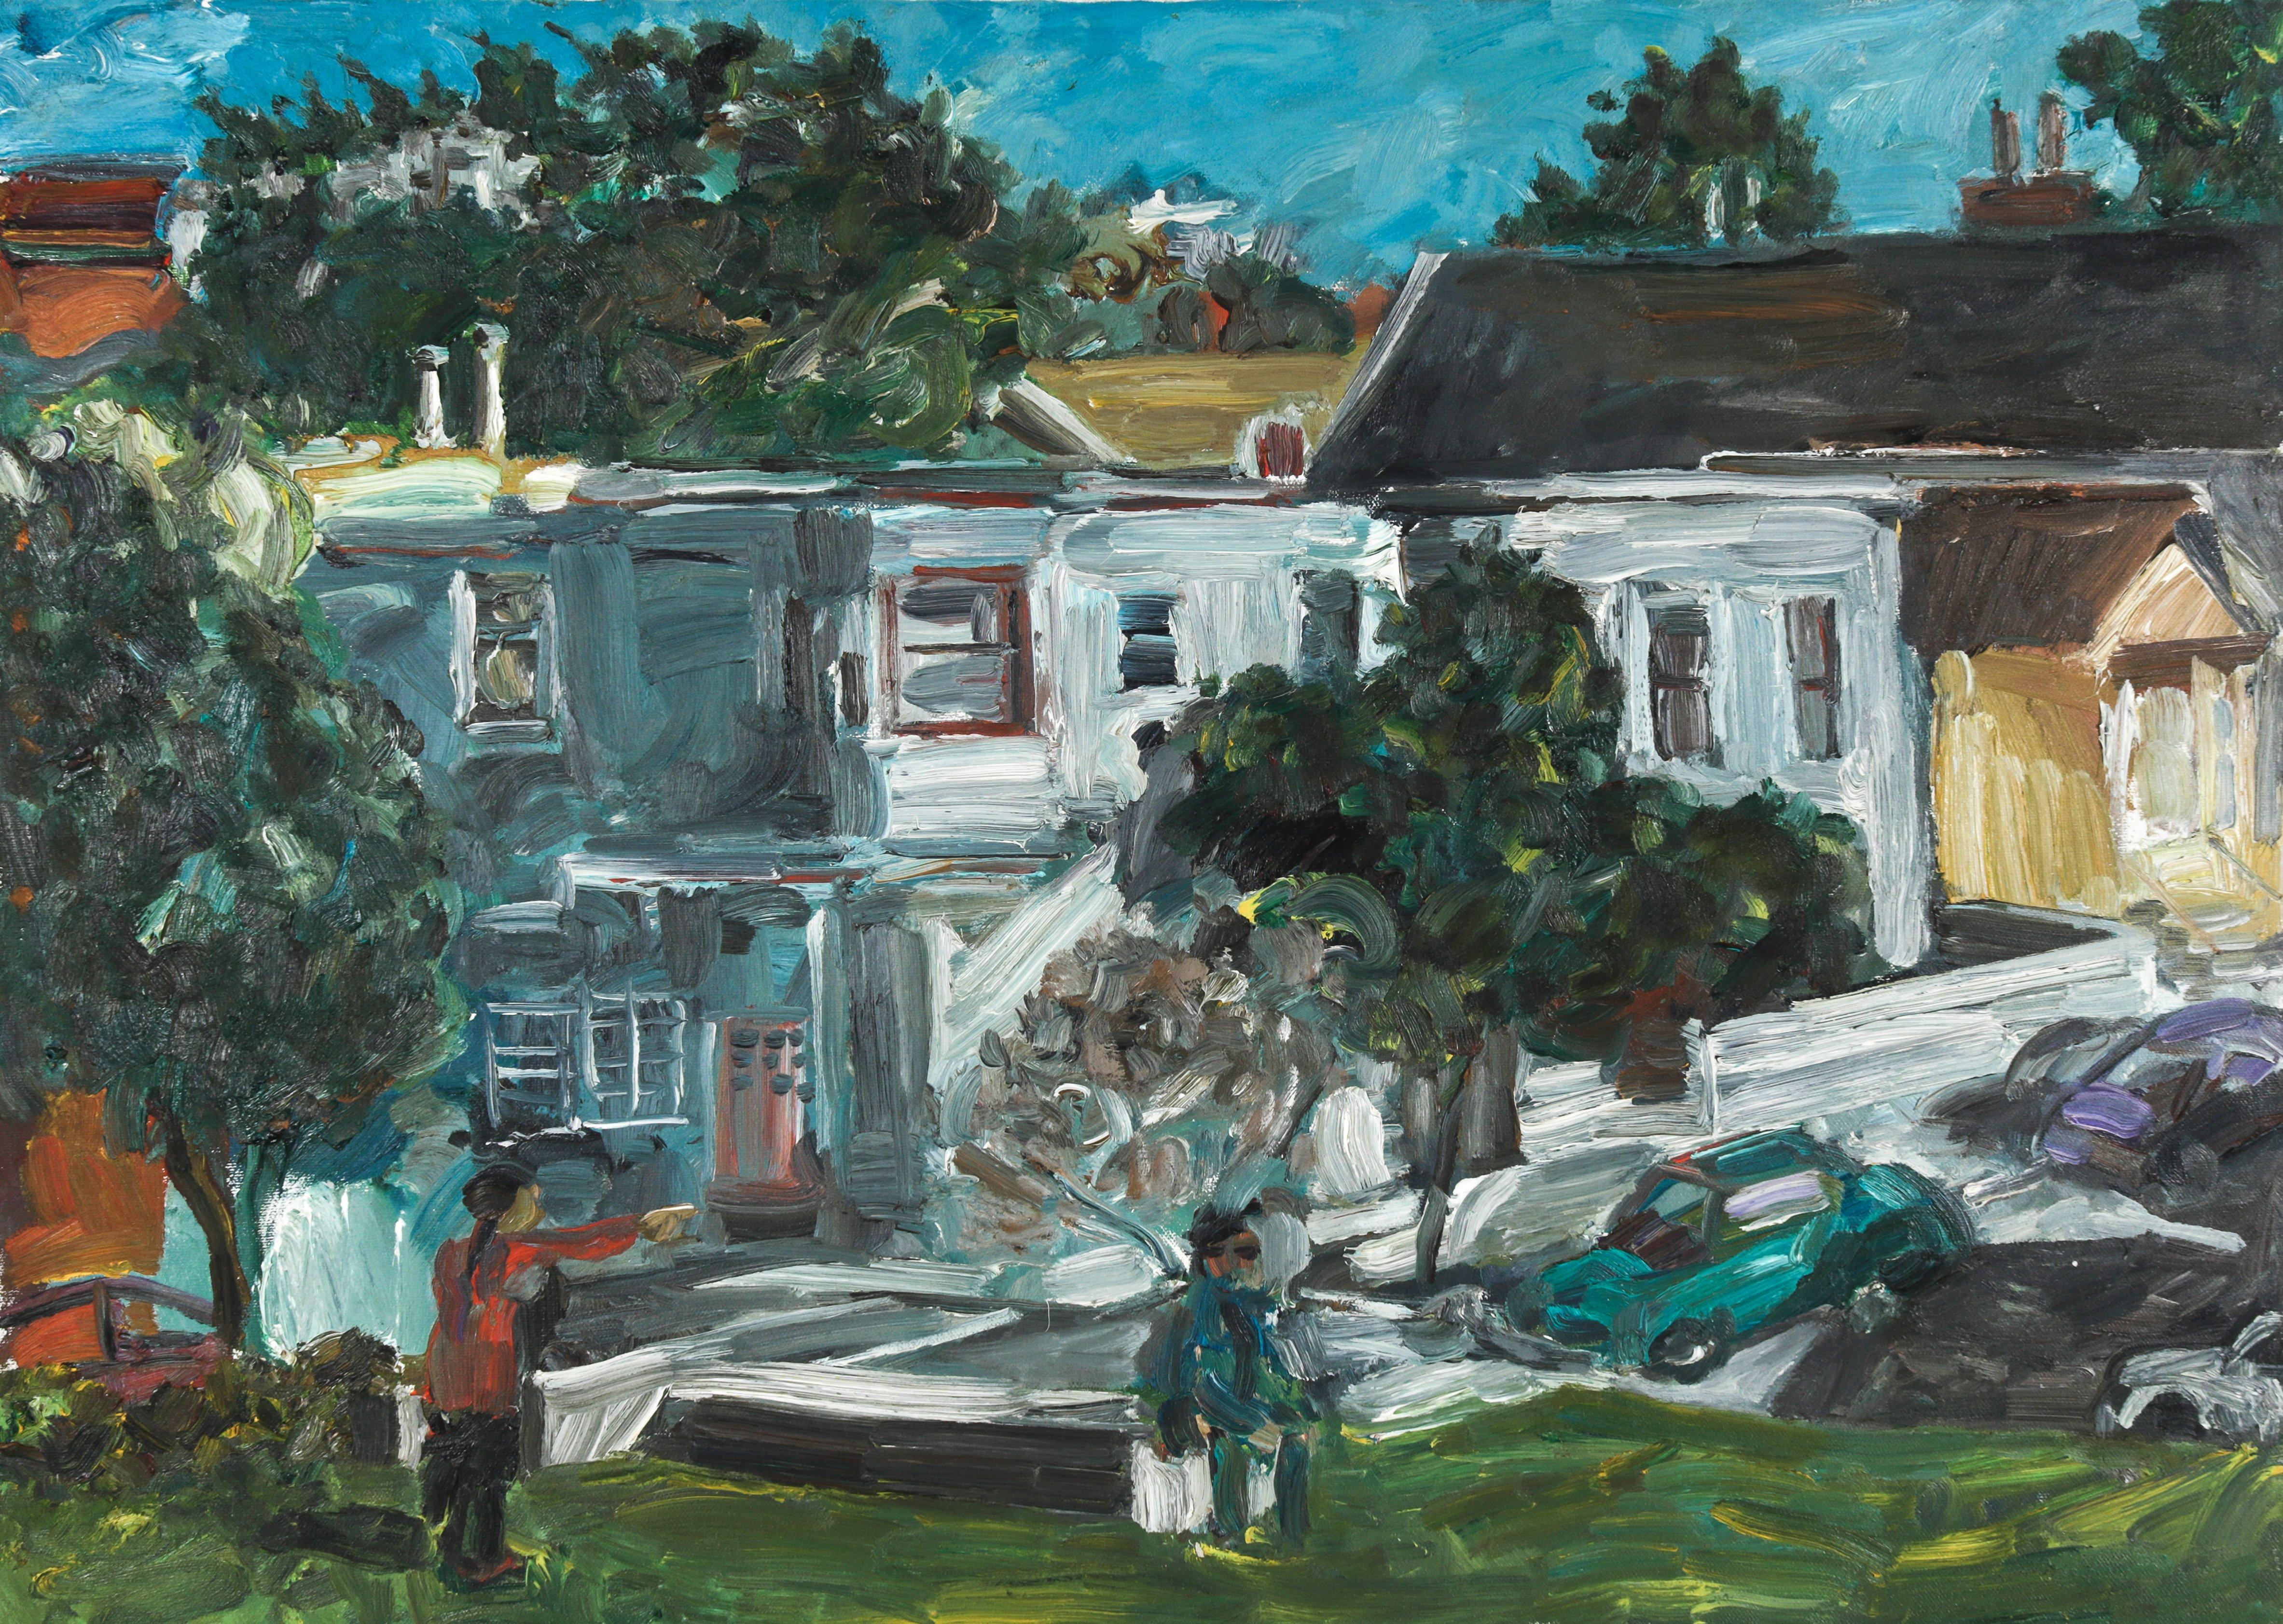 San Francisco Victorian Homes 1999 Oil Painting